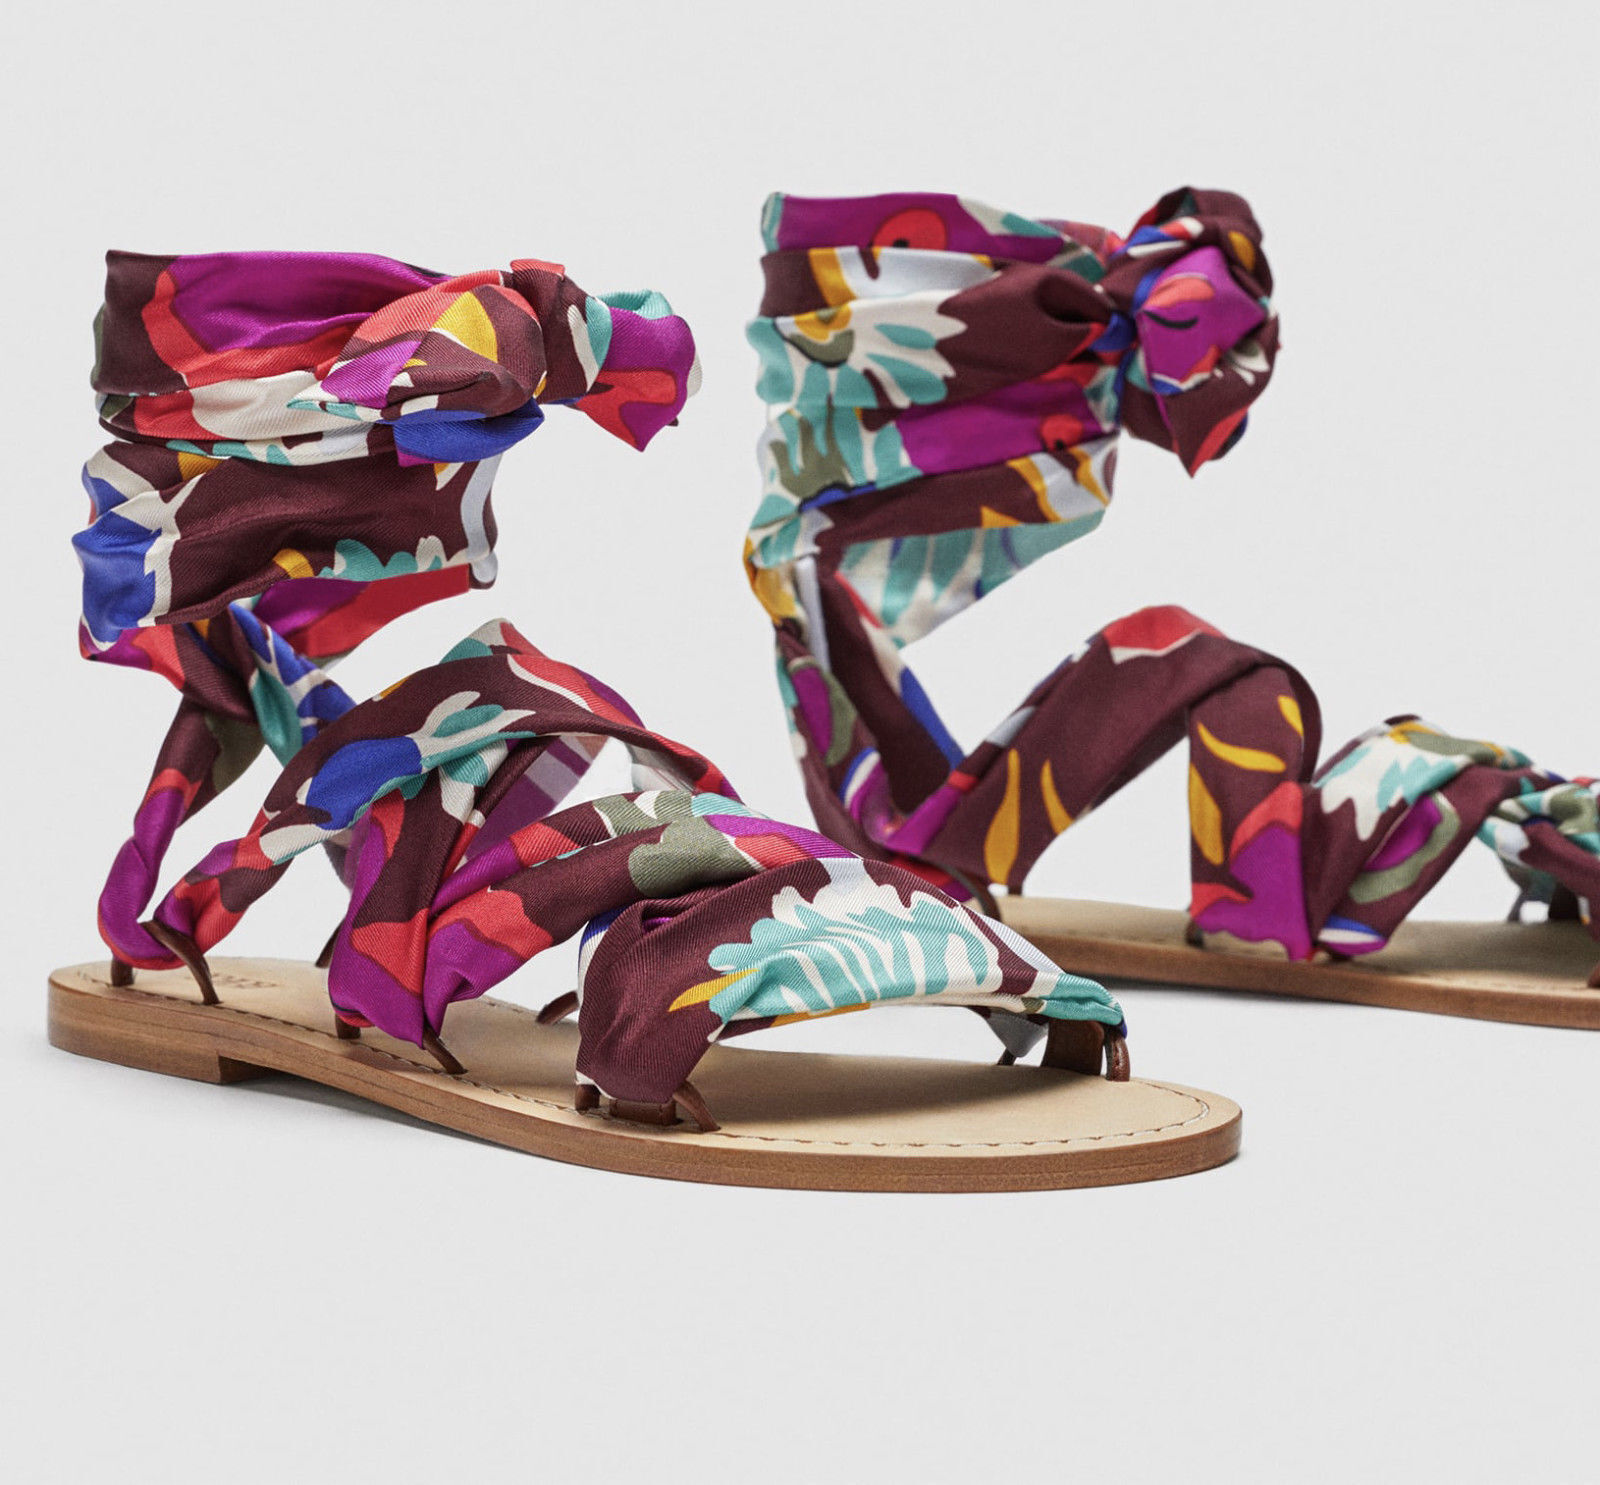 ZARA STUDIO SANDALEN TUCH LEDER SEIDE SCARF SANDALS LEATHER PRINTED SILK